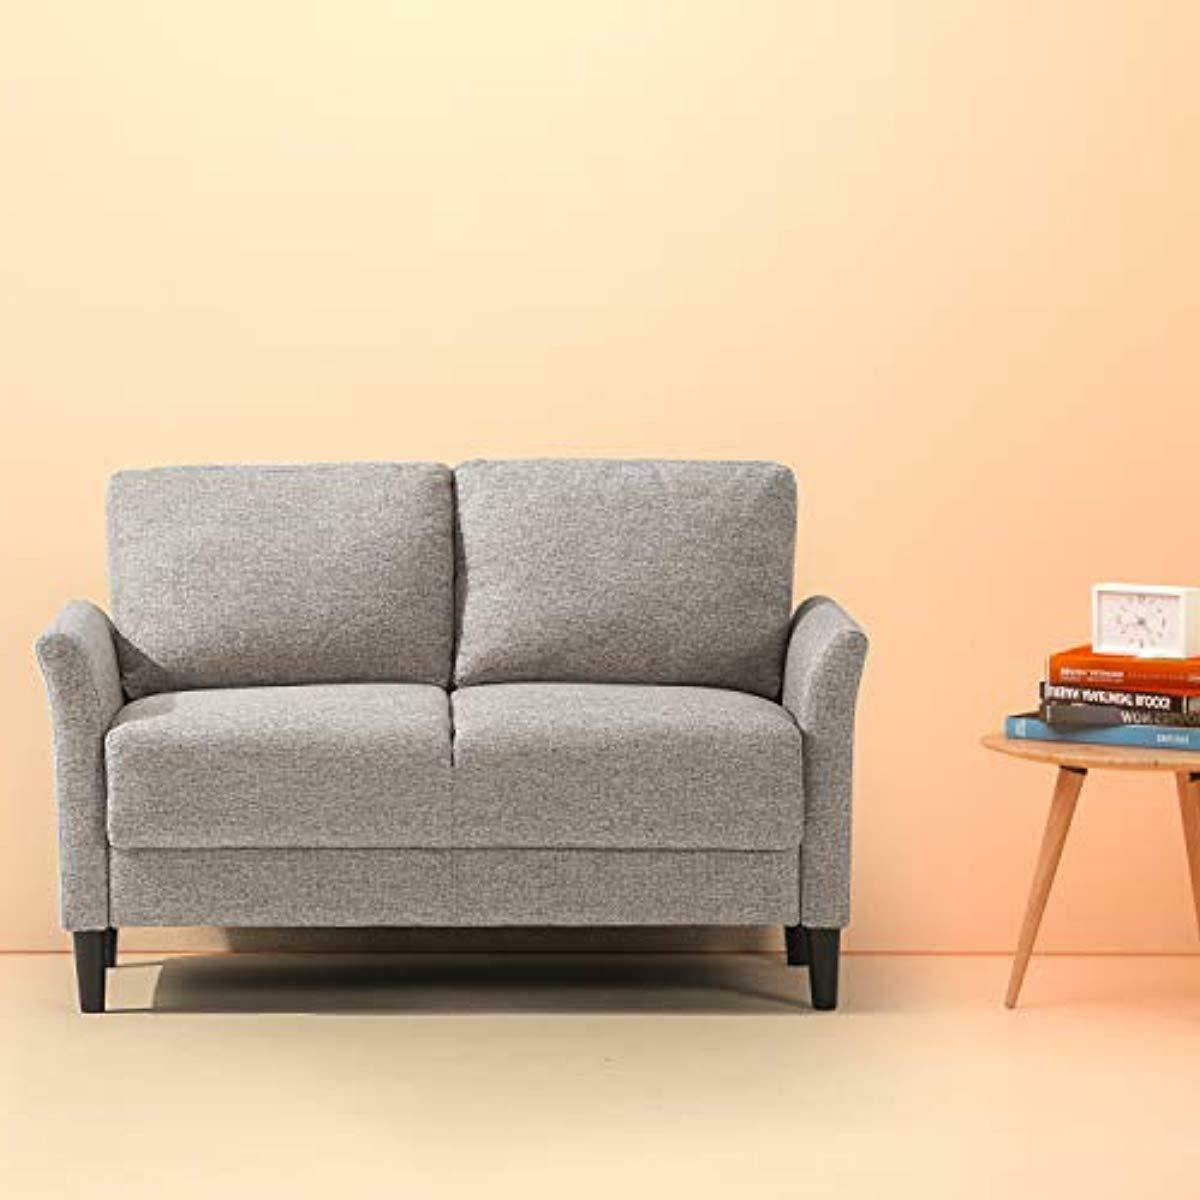 jackie classic upholstered 53 5 inch sofa